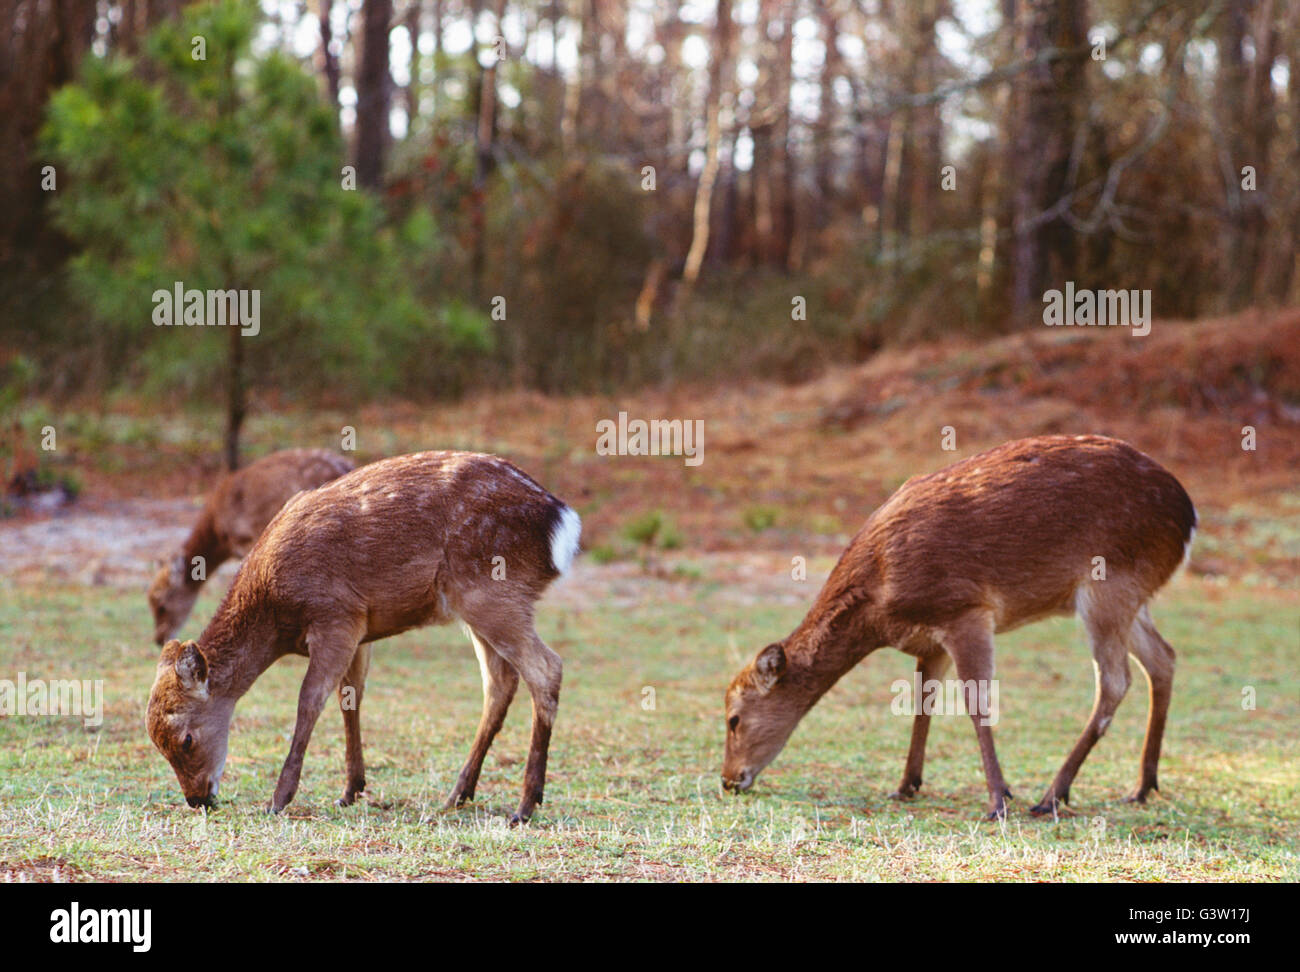 Sika Deer (Cervus Nippon); Chincoteague National Wildlife Refuge, Assateague Island, Virginia, USA - Stock Image